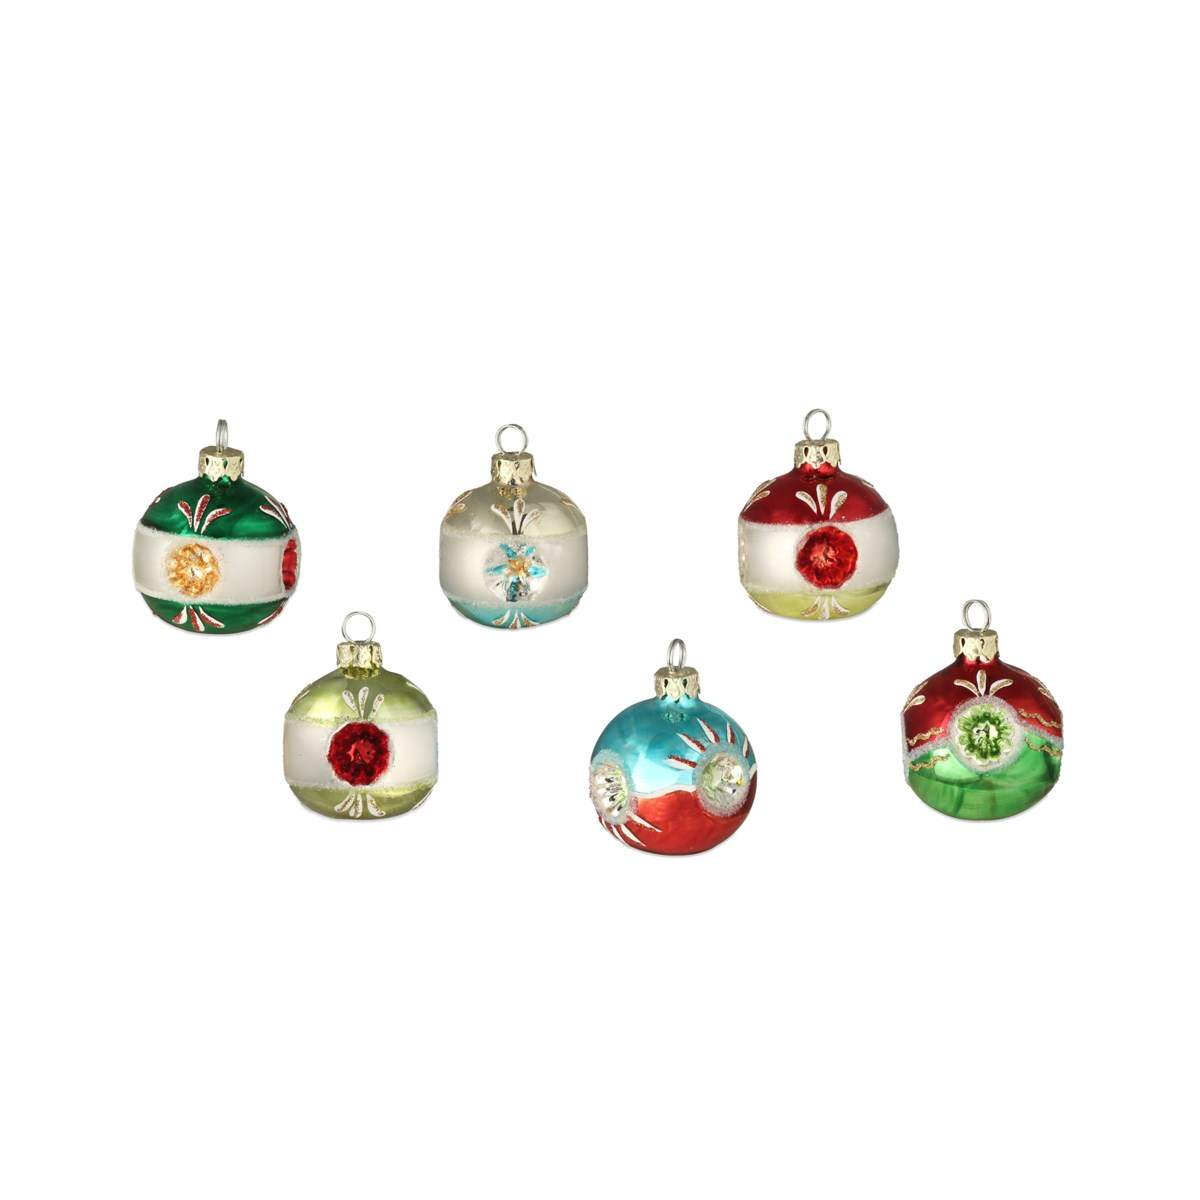 Merry & Bright Ornament Place Card Holder 6A